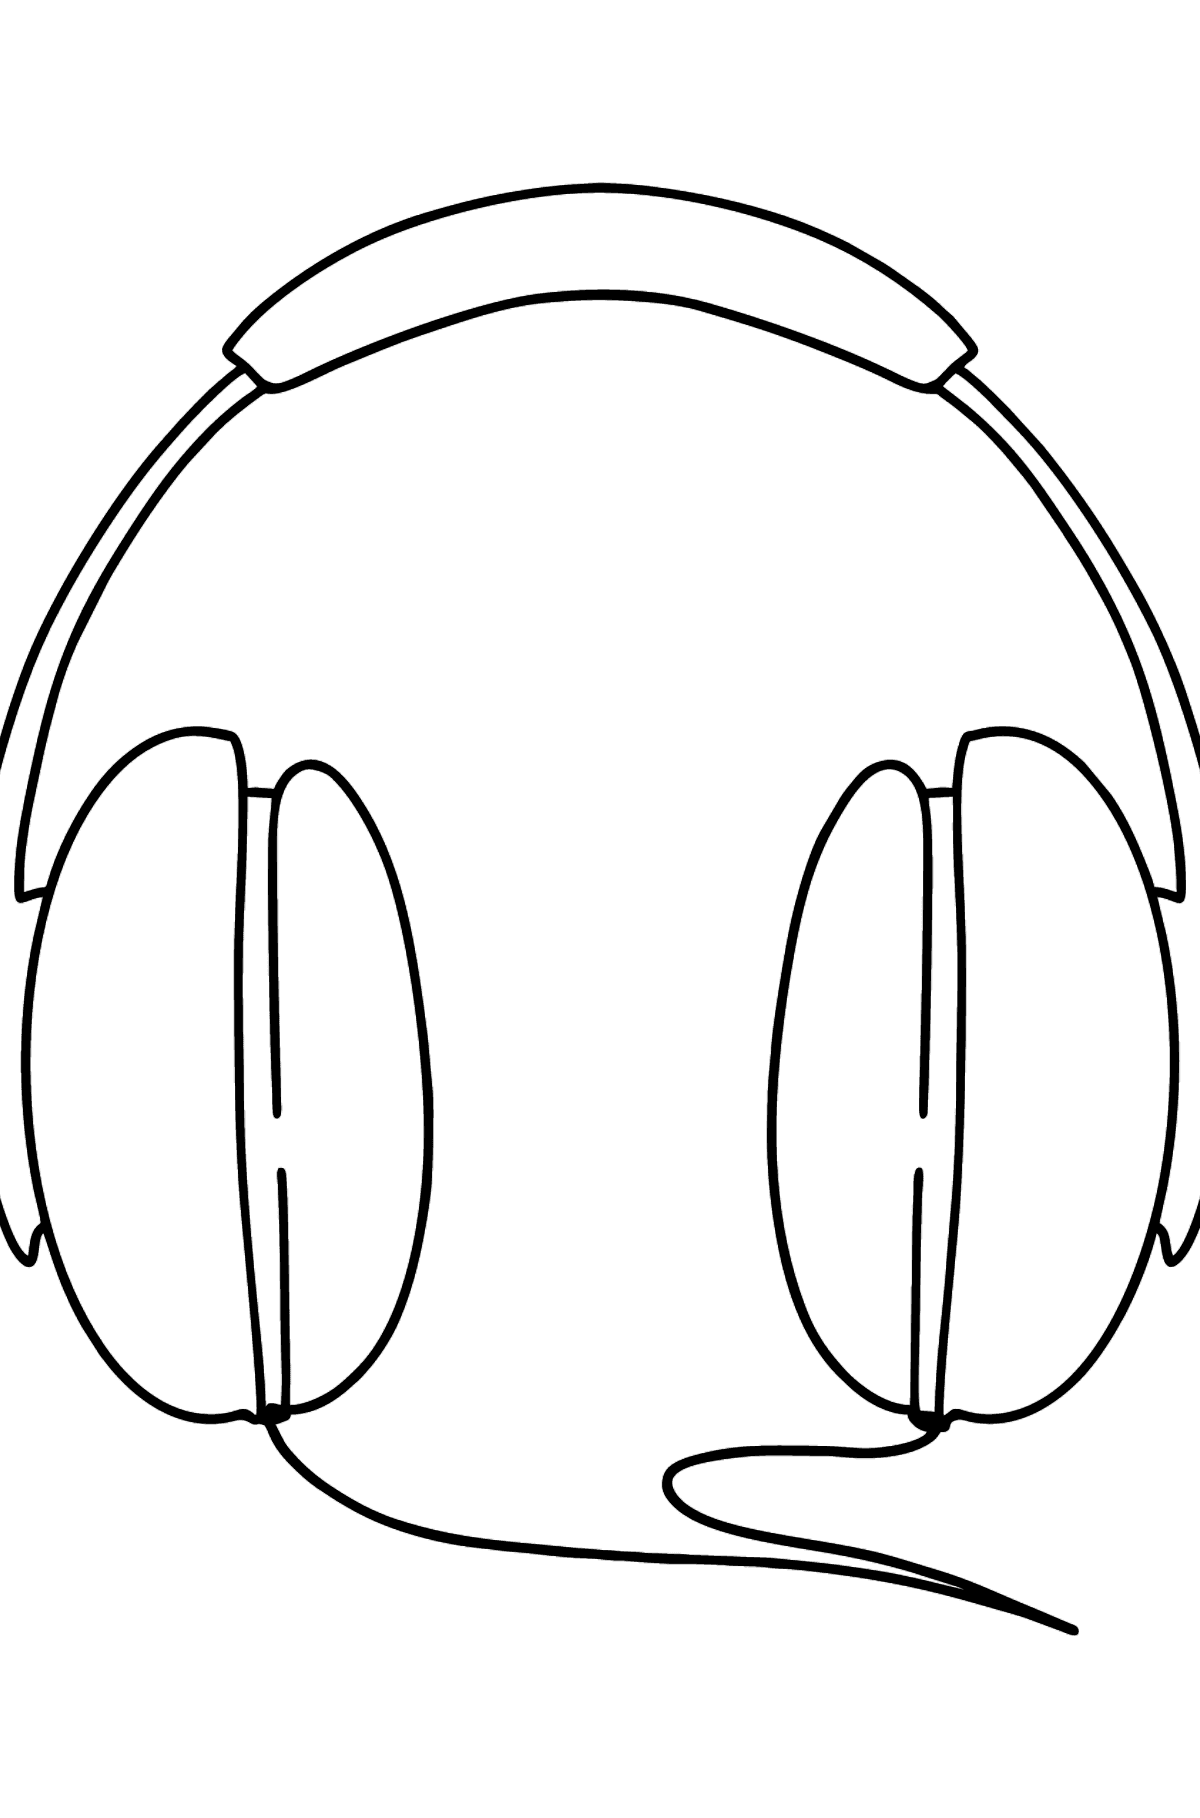 Headphones coloring page - Coloring Pages for Kids